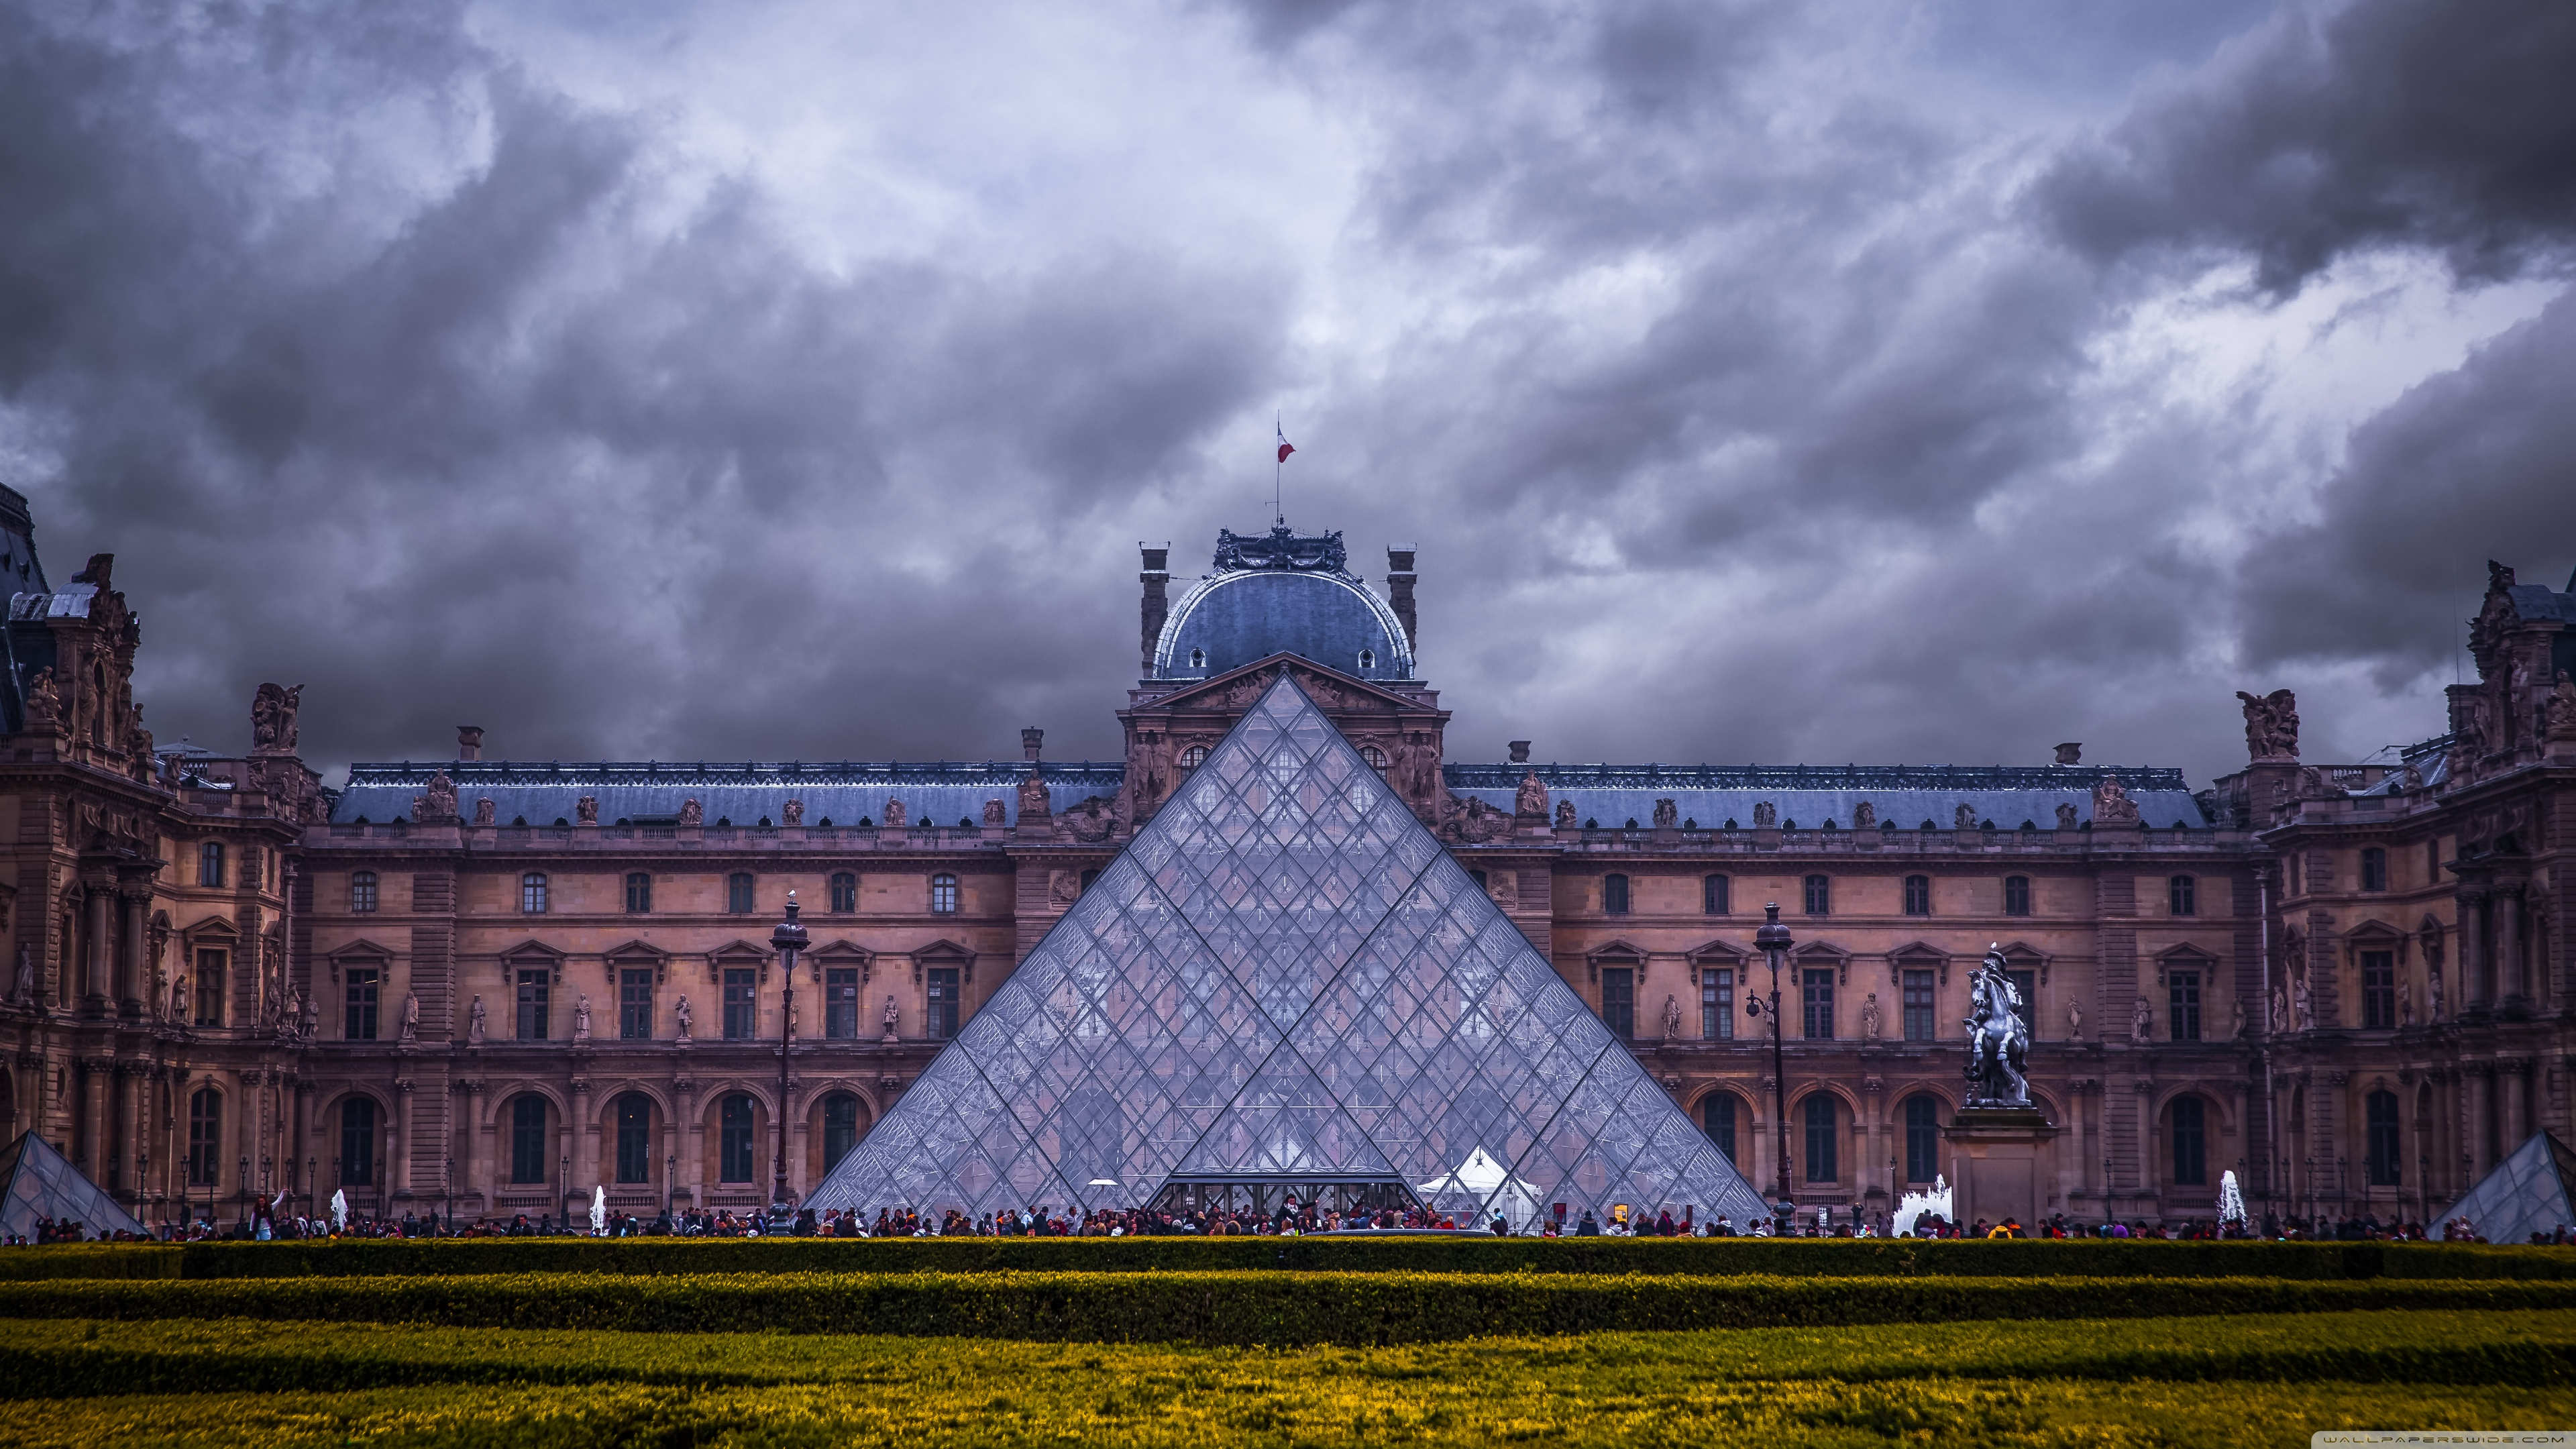 Free Download Louvre Museum Paris France 4k Hd Desktop Wallpaper For 4k 3840x2160 For Your Desktop Mobile Tablet Explore 49 Louvre Wallpaper 4k Louvre Wallpaper 4k Louvre Wallpapers Louvre Windows Wallpaper